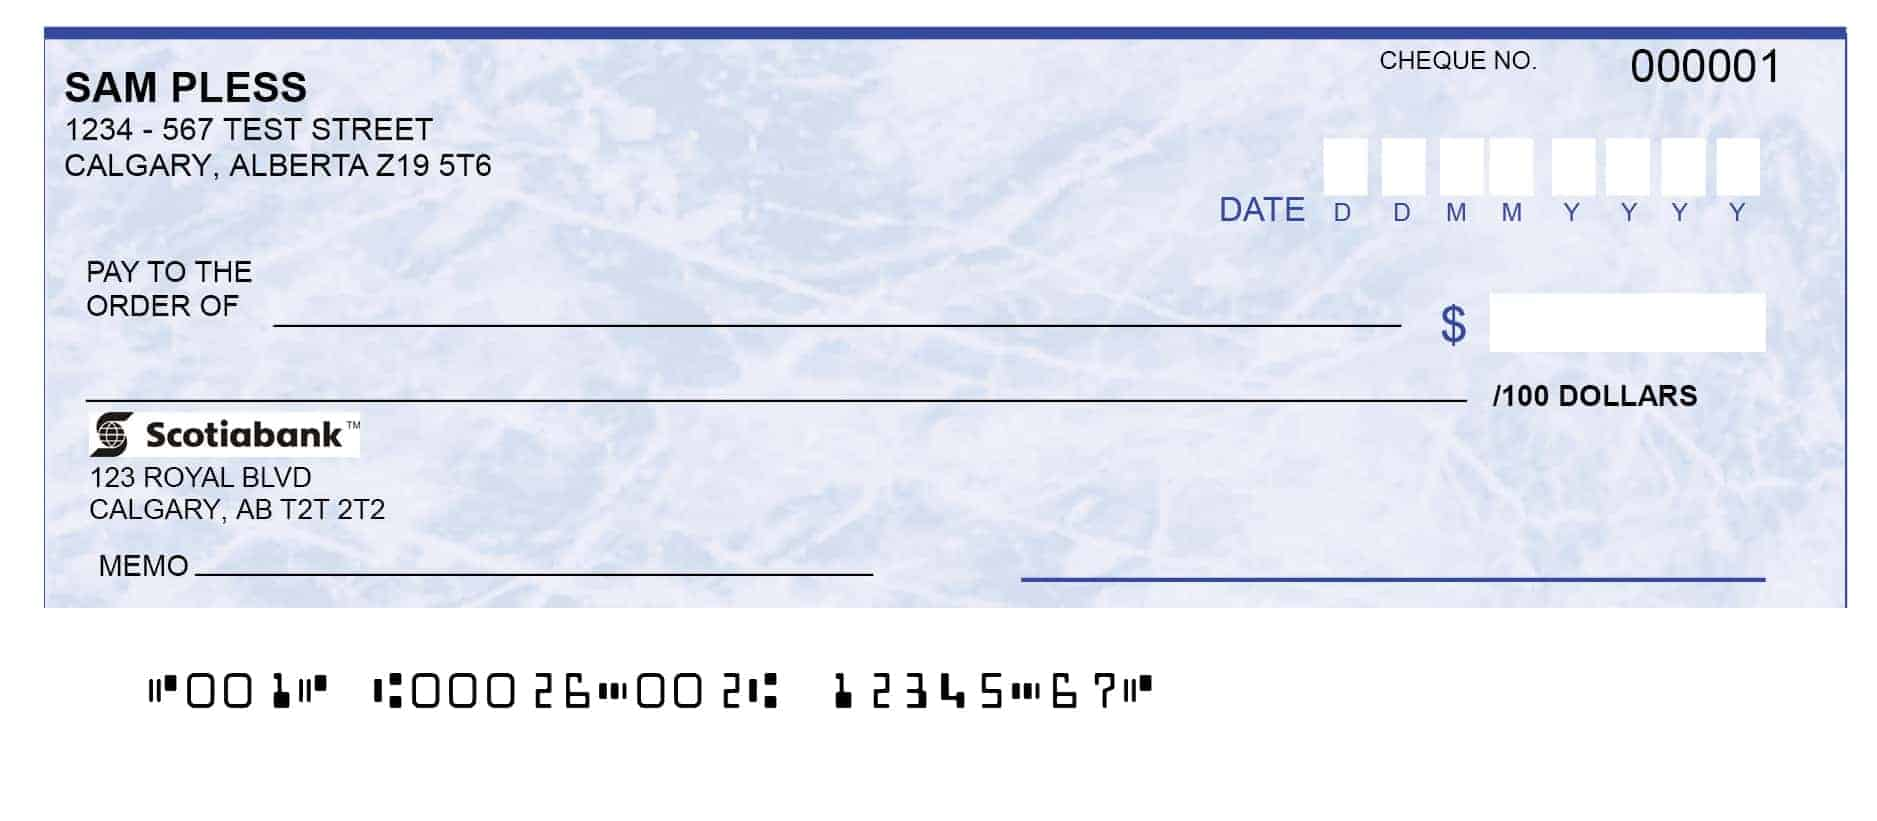 Canadian Cheque Account Number Cheque Print Blog